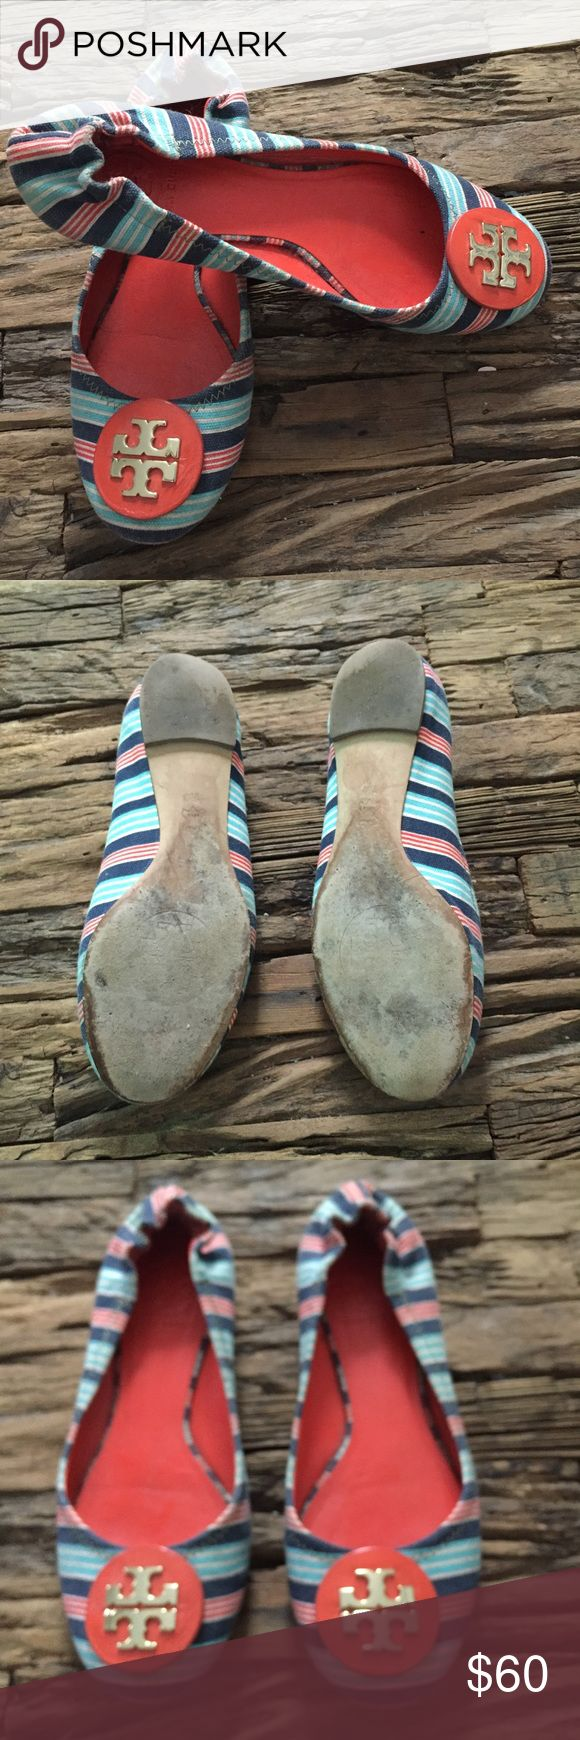 Size 7 Tory Burch Striped Ballet Flats Tory Burch Logo striped ballet flats! Great for spring and summer! Only worn a few times!! Size 7! See pics for details- they're in great shape! Tory Burch Shoes Flats & Loafers